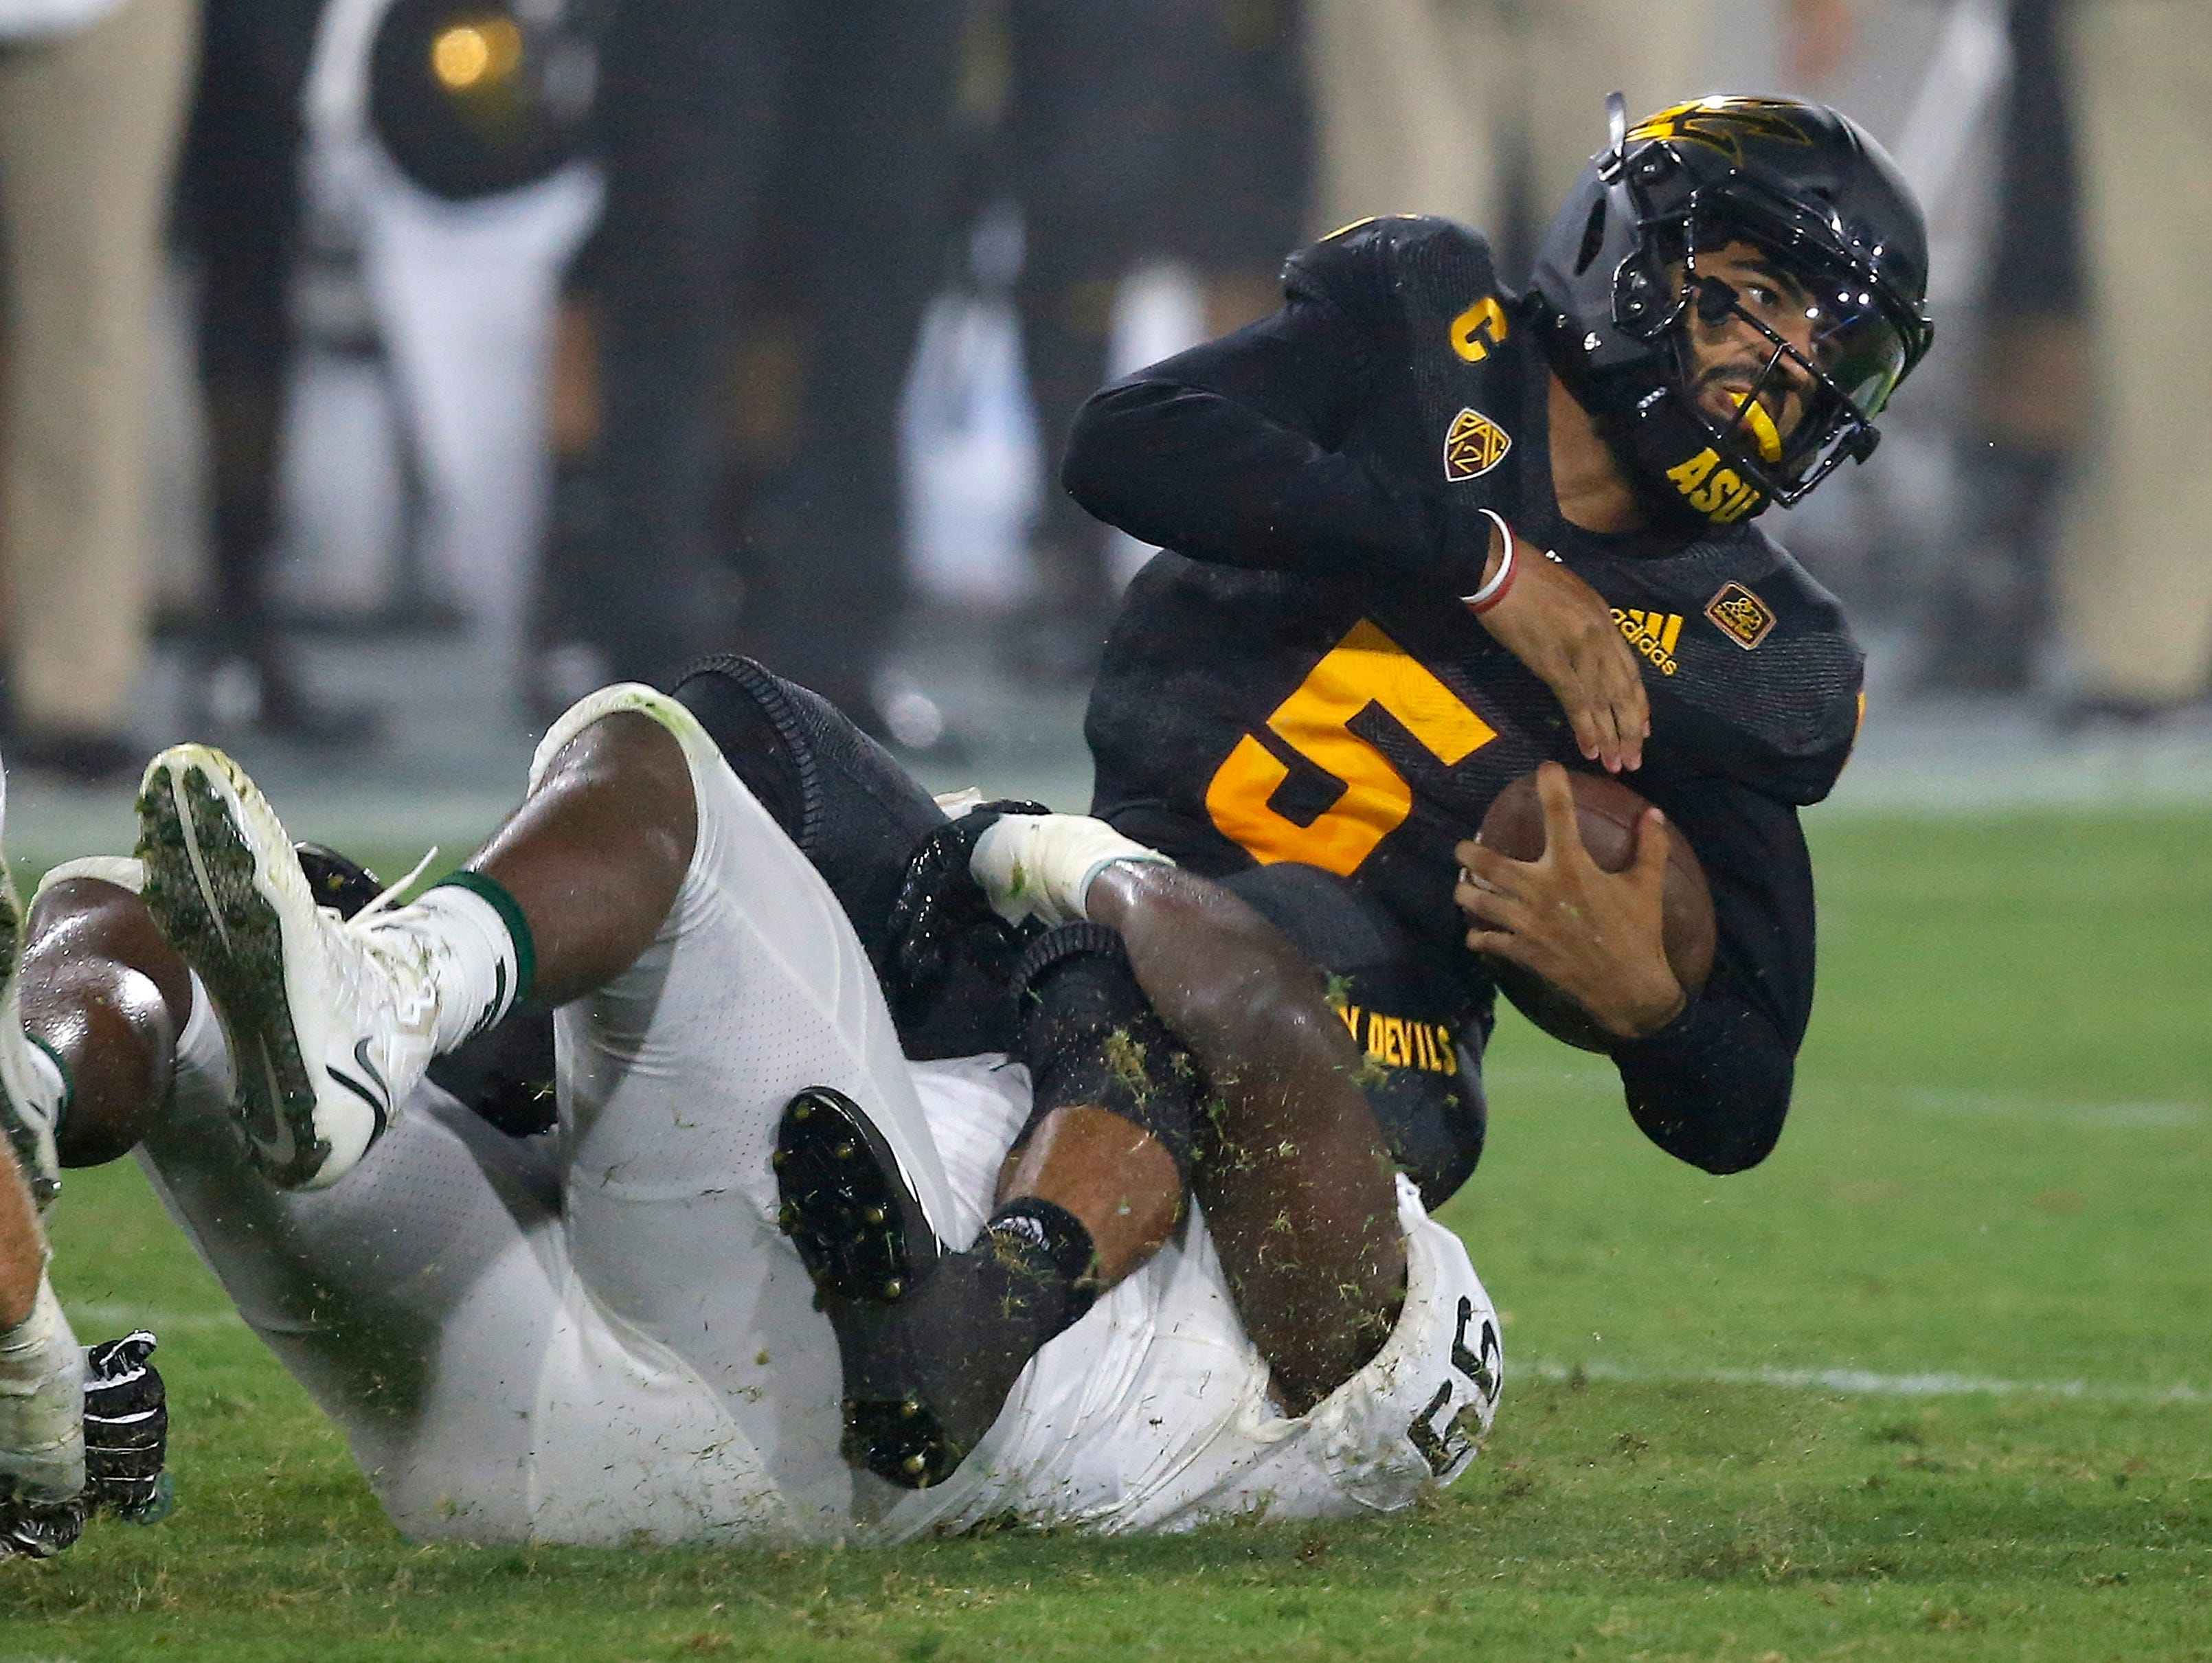 Arizona State quarterback Manny Wilkins (5) gets tackled by Michigan State defensive tackle Raequan Williams (99) during the first half of an NCAA college football game Saturday, Sept. 8, 2018, in Tempe, Ariz. (AP Photo/Ross D. Franklin)